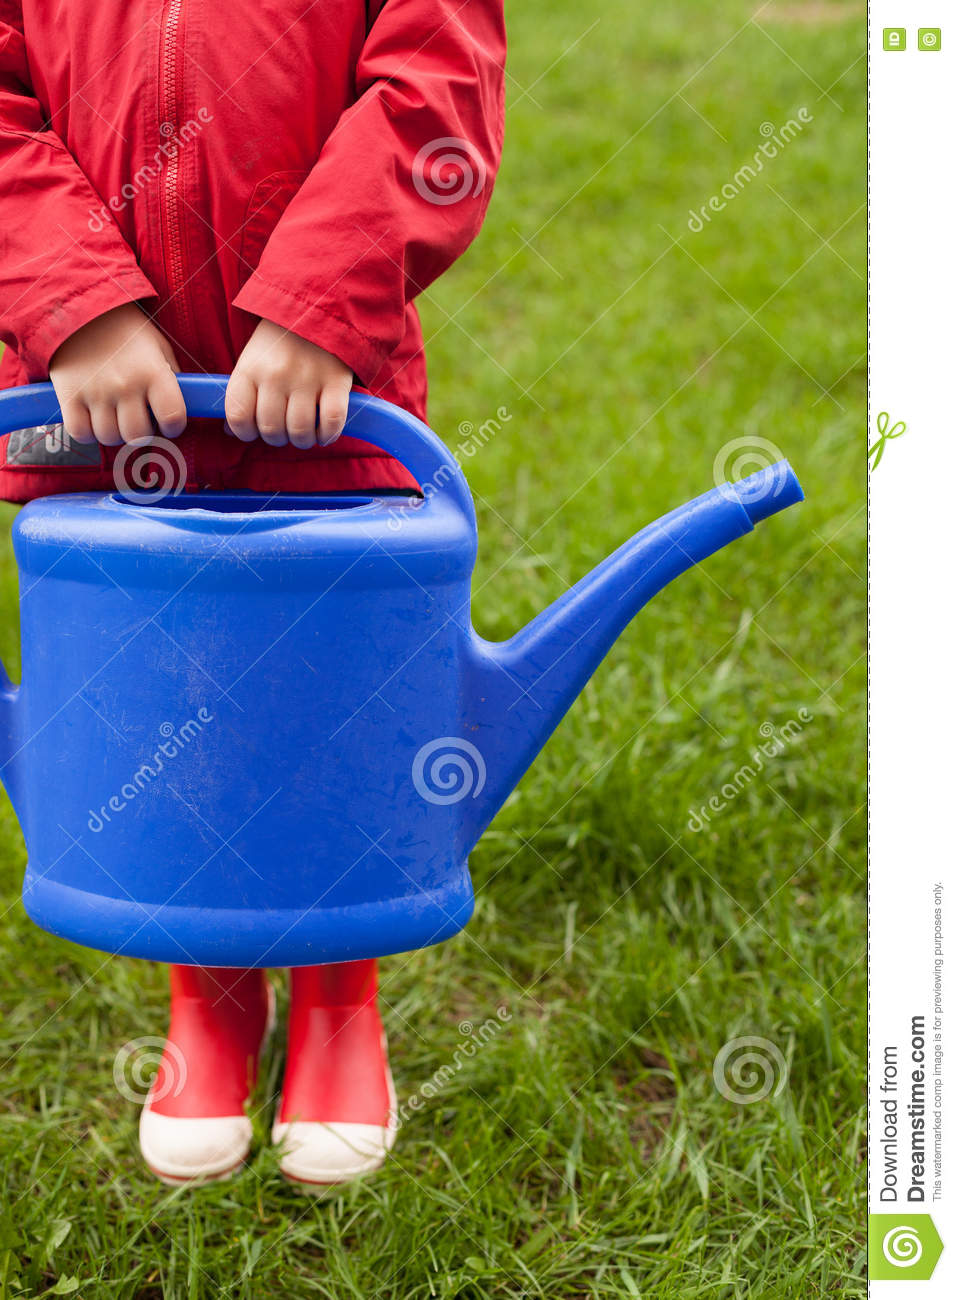 4 years old boy in a red jacket and rubber boots is going to water a tree and from a nice big blue watering can.